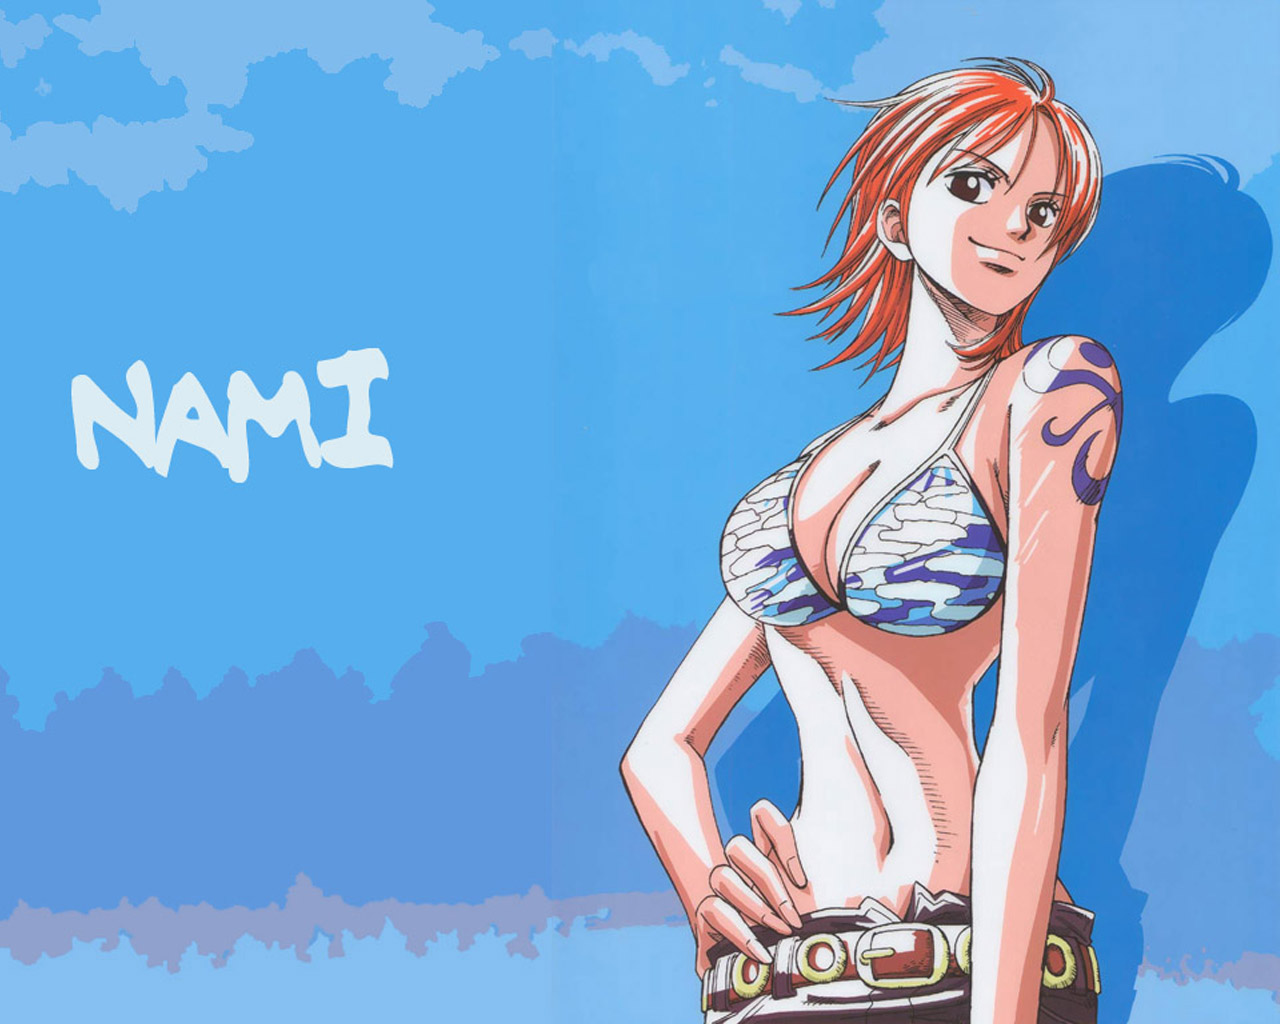 One Piece  Nami   Images Actress   Images Stock Art